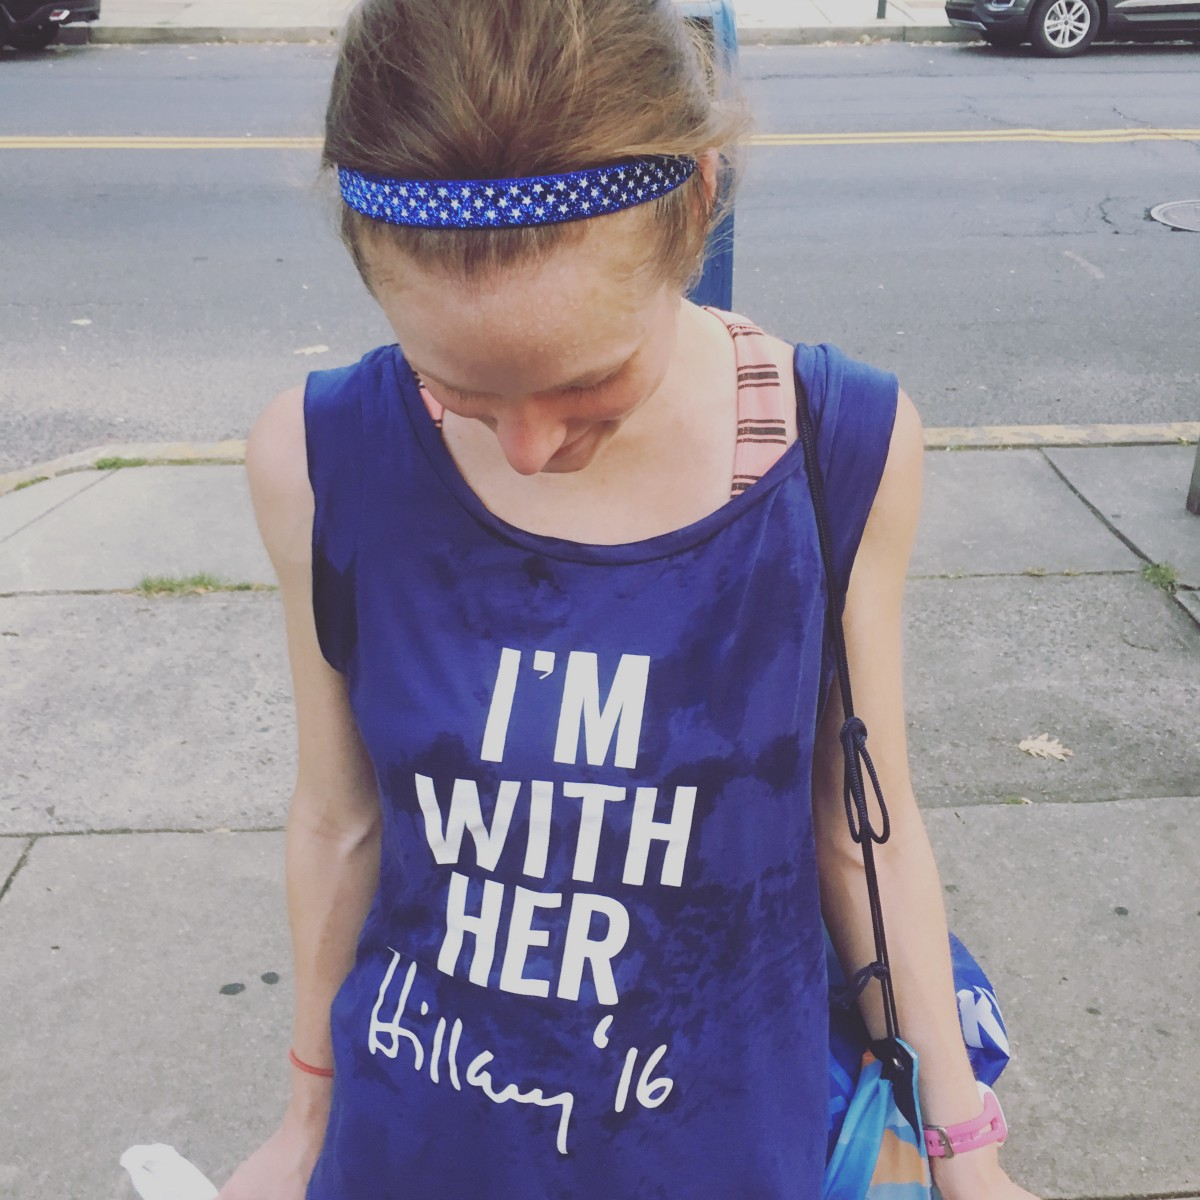 #womenslives: I'm with her (still)